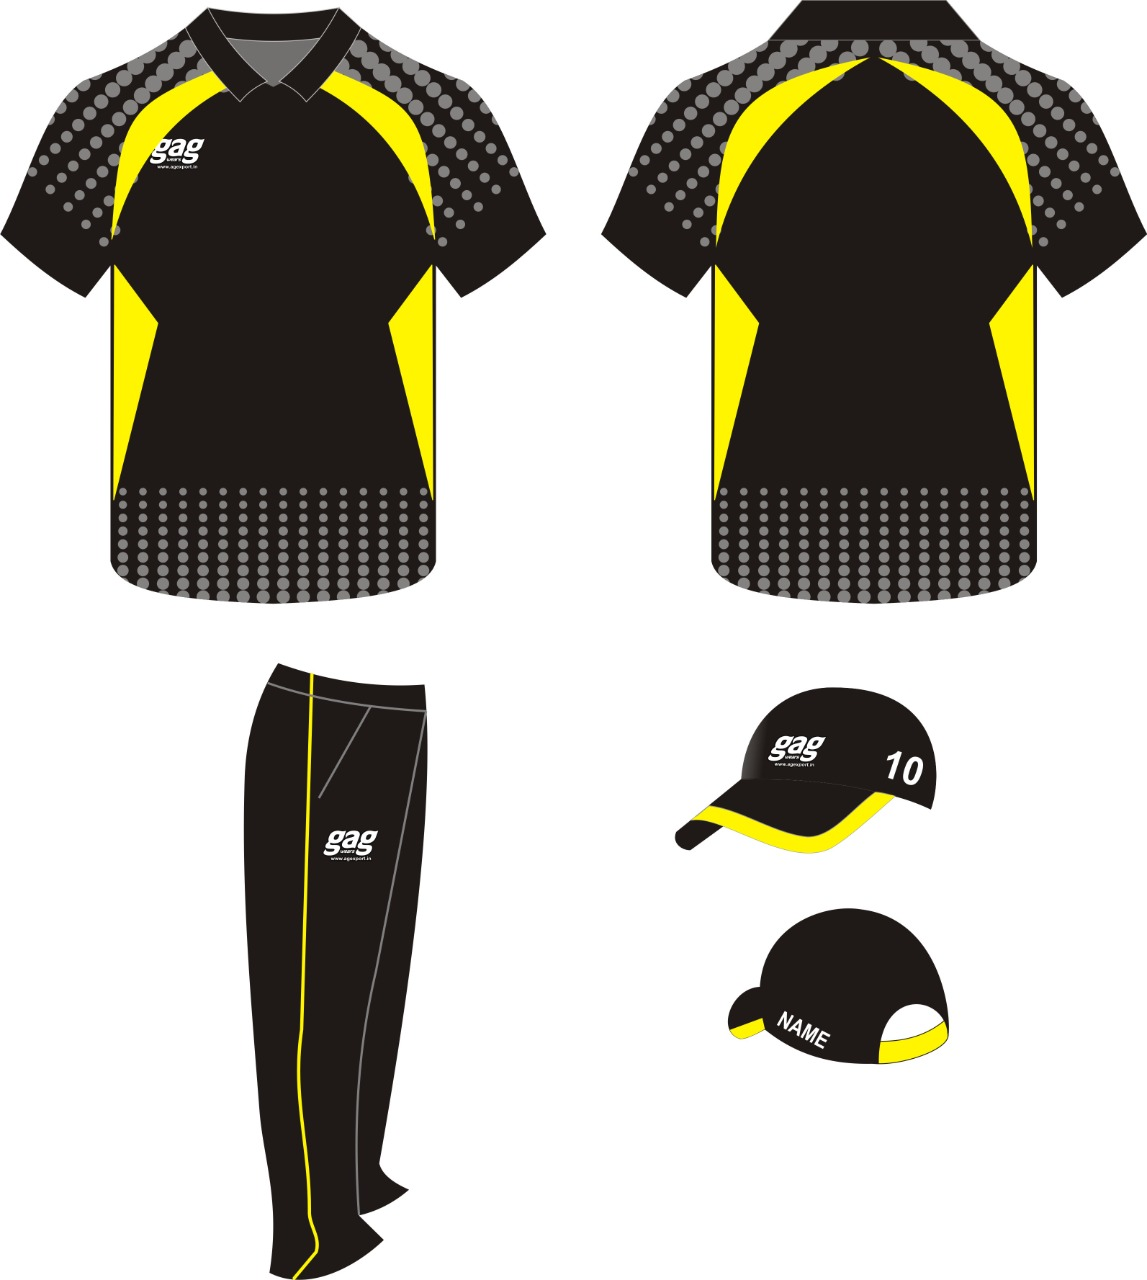 Indian Cricket Team Jersey Manufacturers in Jalandhar in Bangladesh